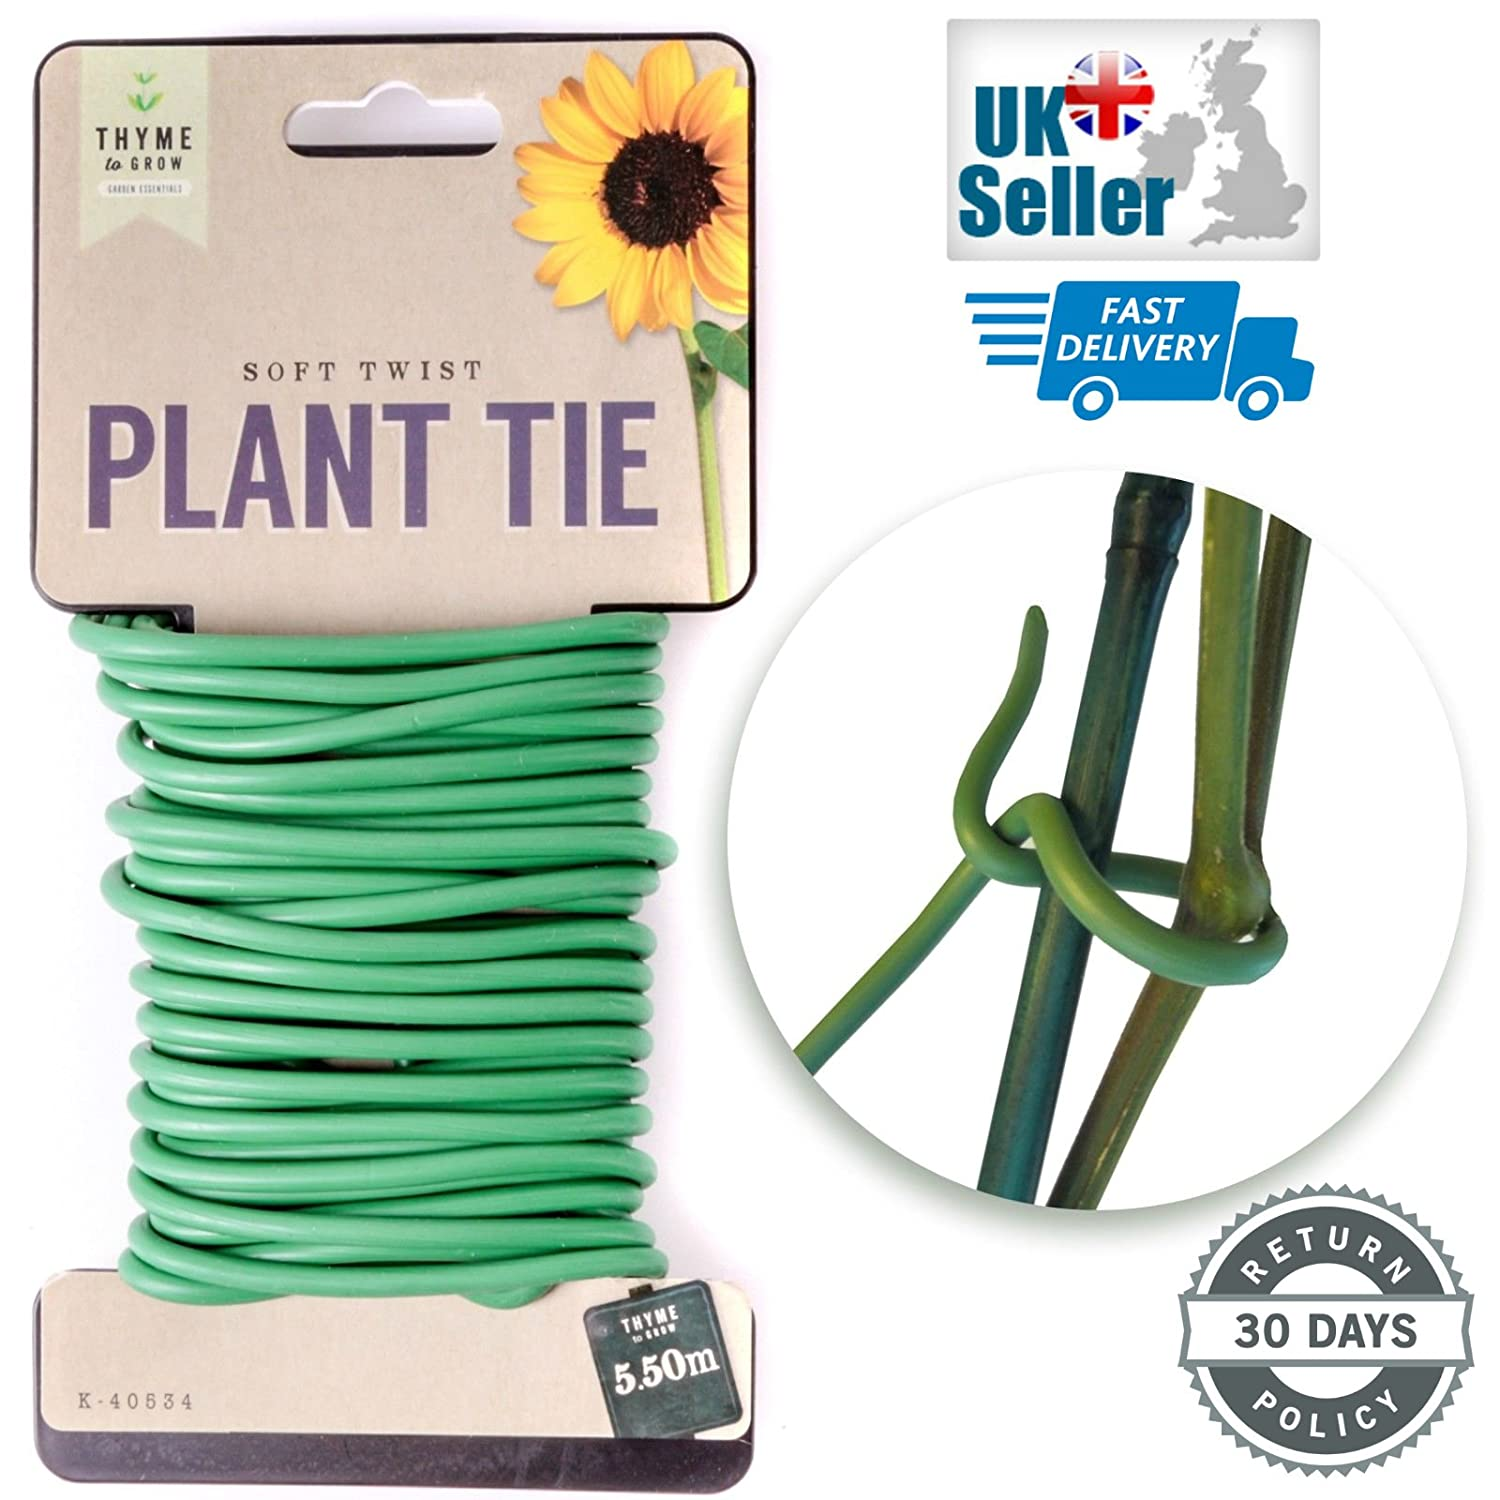 Single Pack 5.5m Thyme To Grow Soft Twist Garden Thick Plant Tie Support Durable Reusable Free UK Delivery